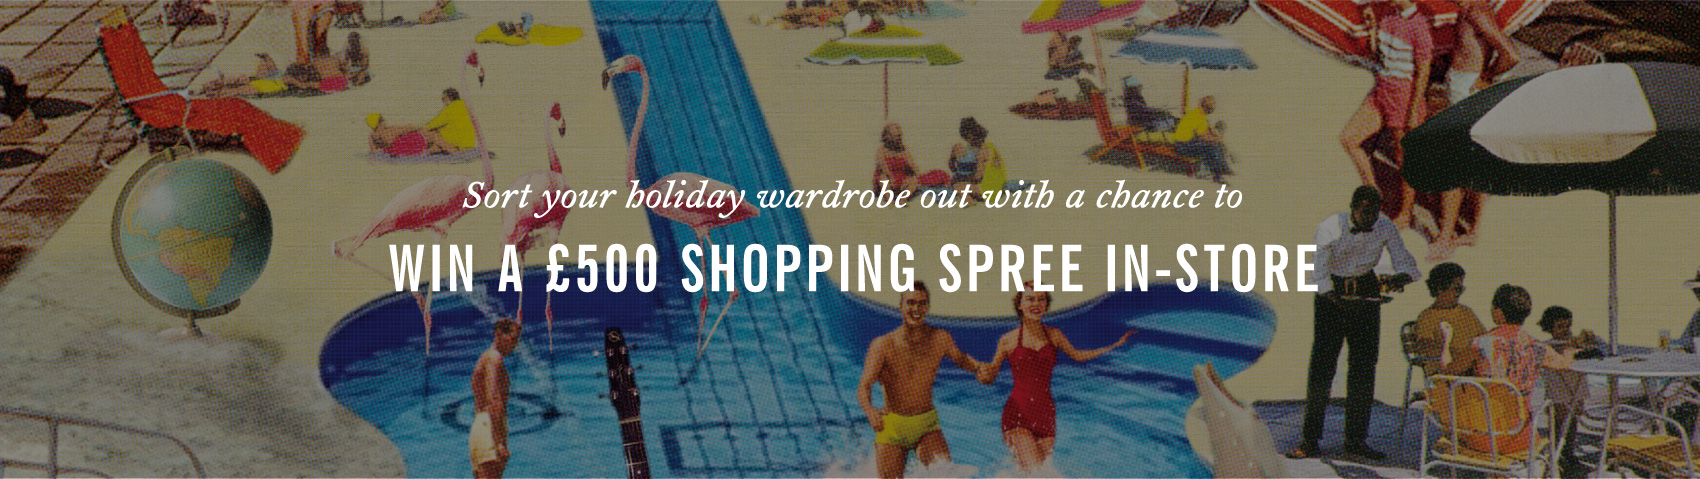 Win a £500 Shopping Spree In-Stores